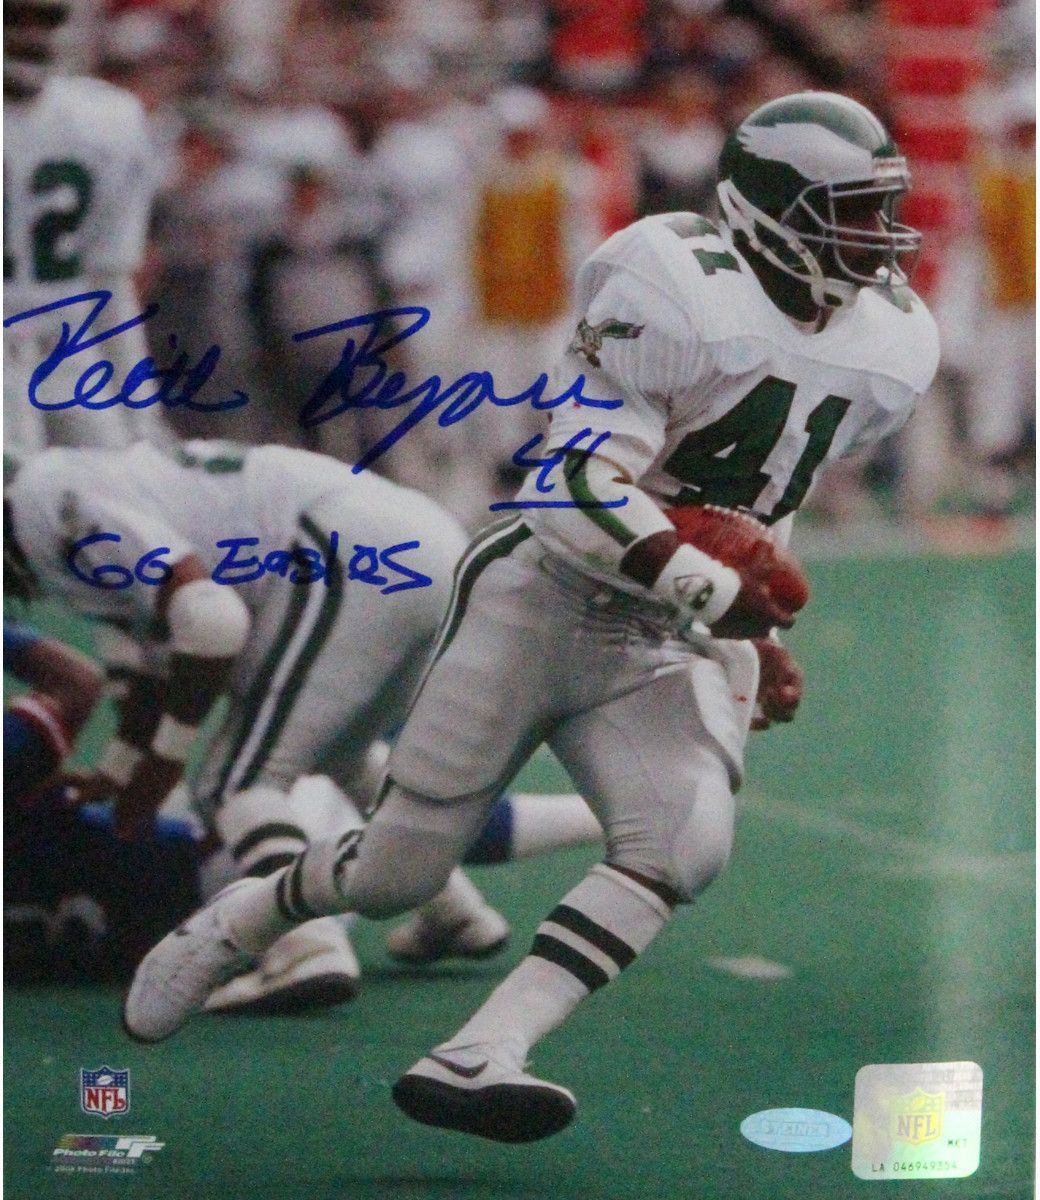 Keith Byers Signed 8x10 Photo w/ 'Go Eagles Insc'